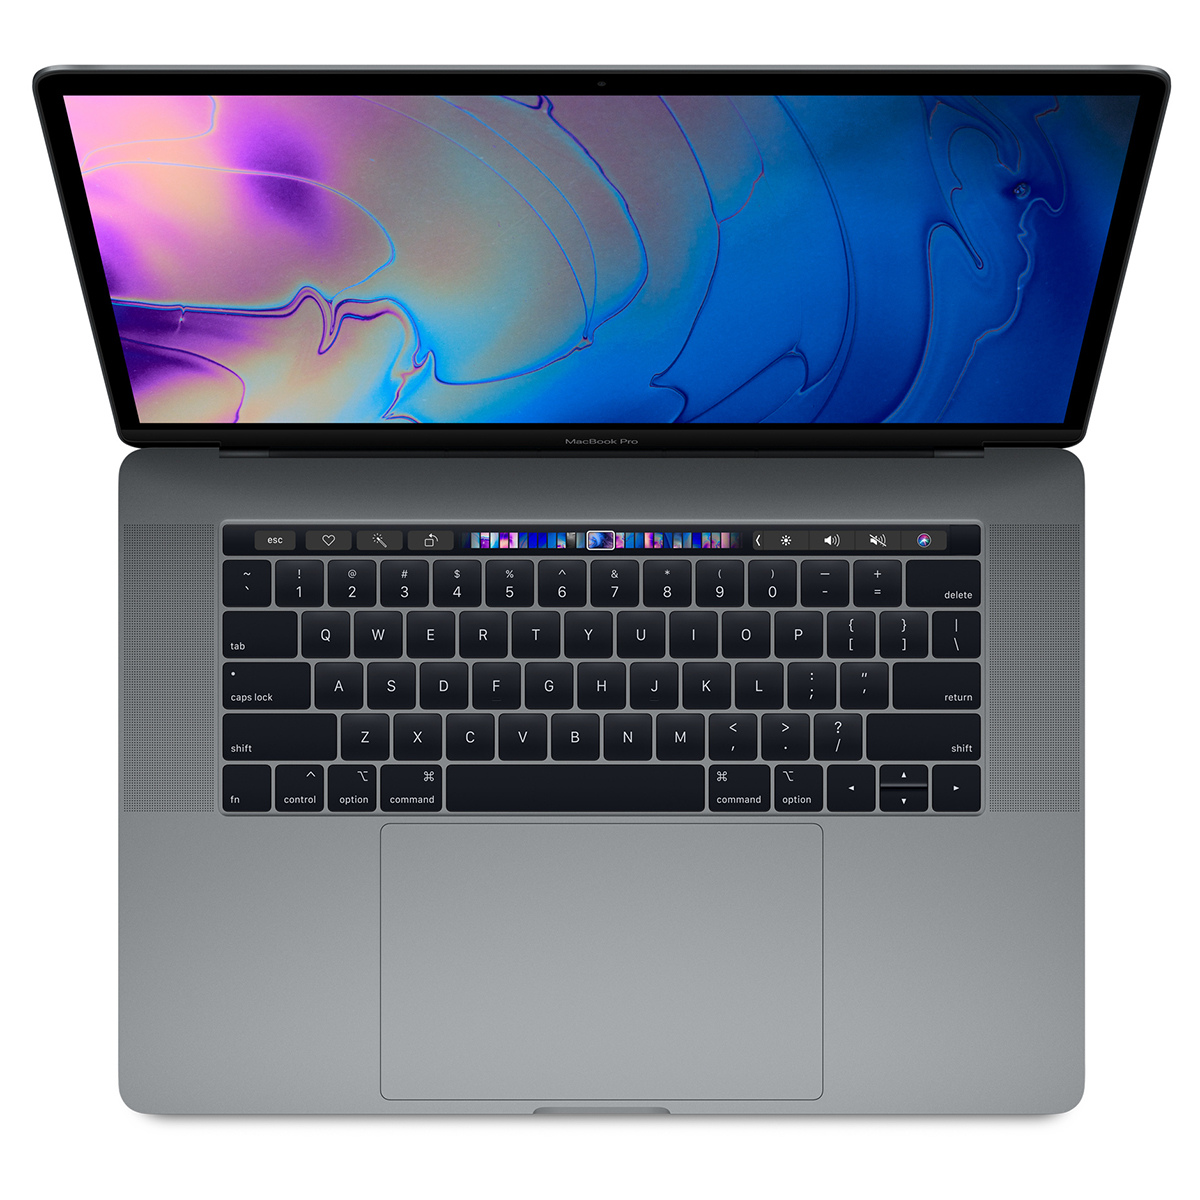 Macbook Pro - I prefer the Apple ecosystem, personally. The price is worth the quality and ease of use.